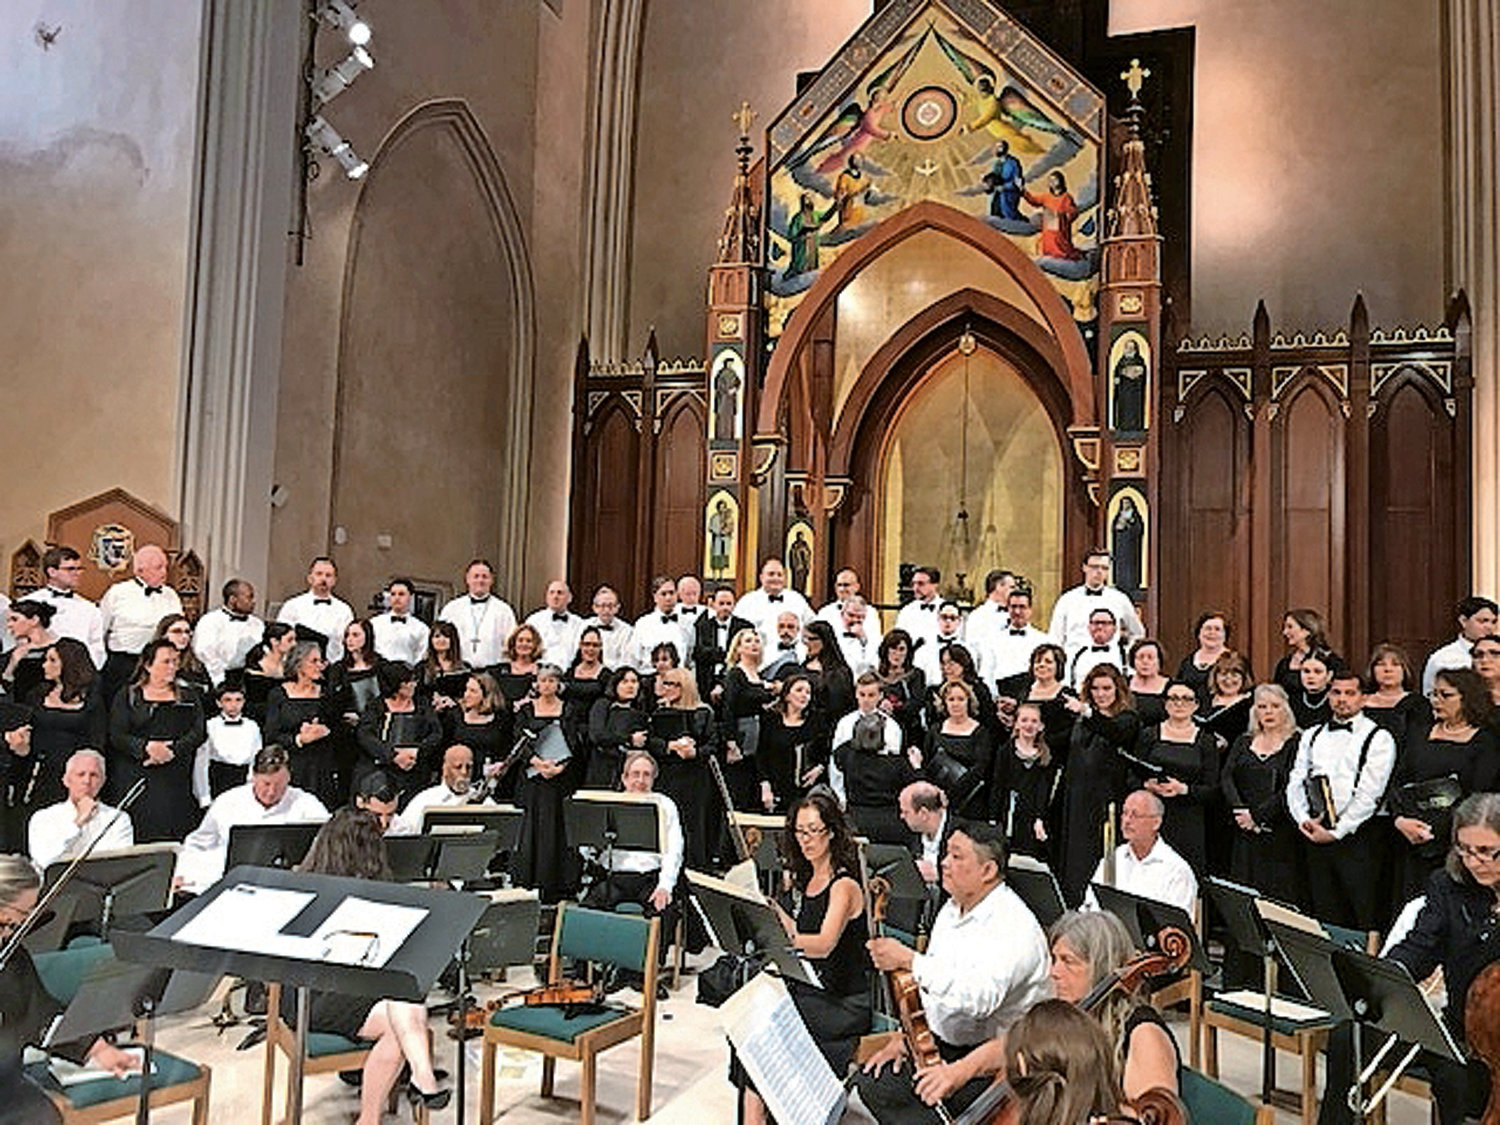 The several St. Agnes choirs last came together for a concert in June. They will convene again for the Christmas concert on Dec. 13.